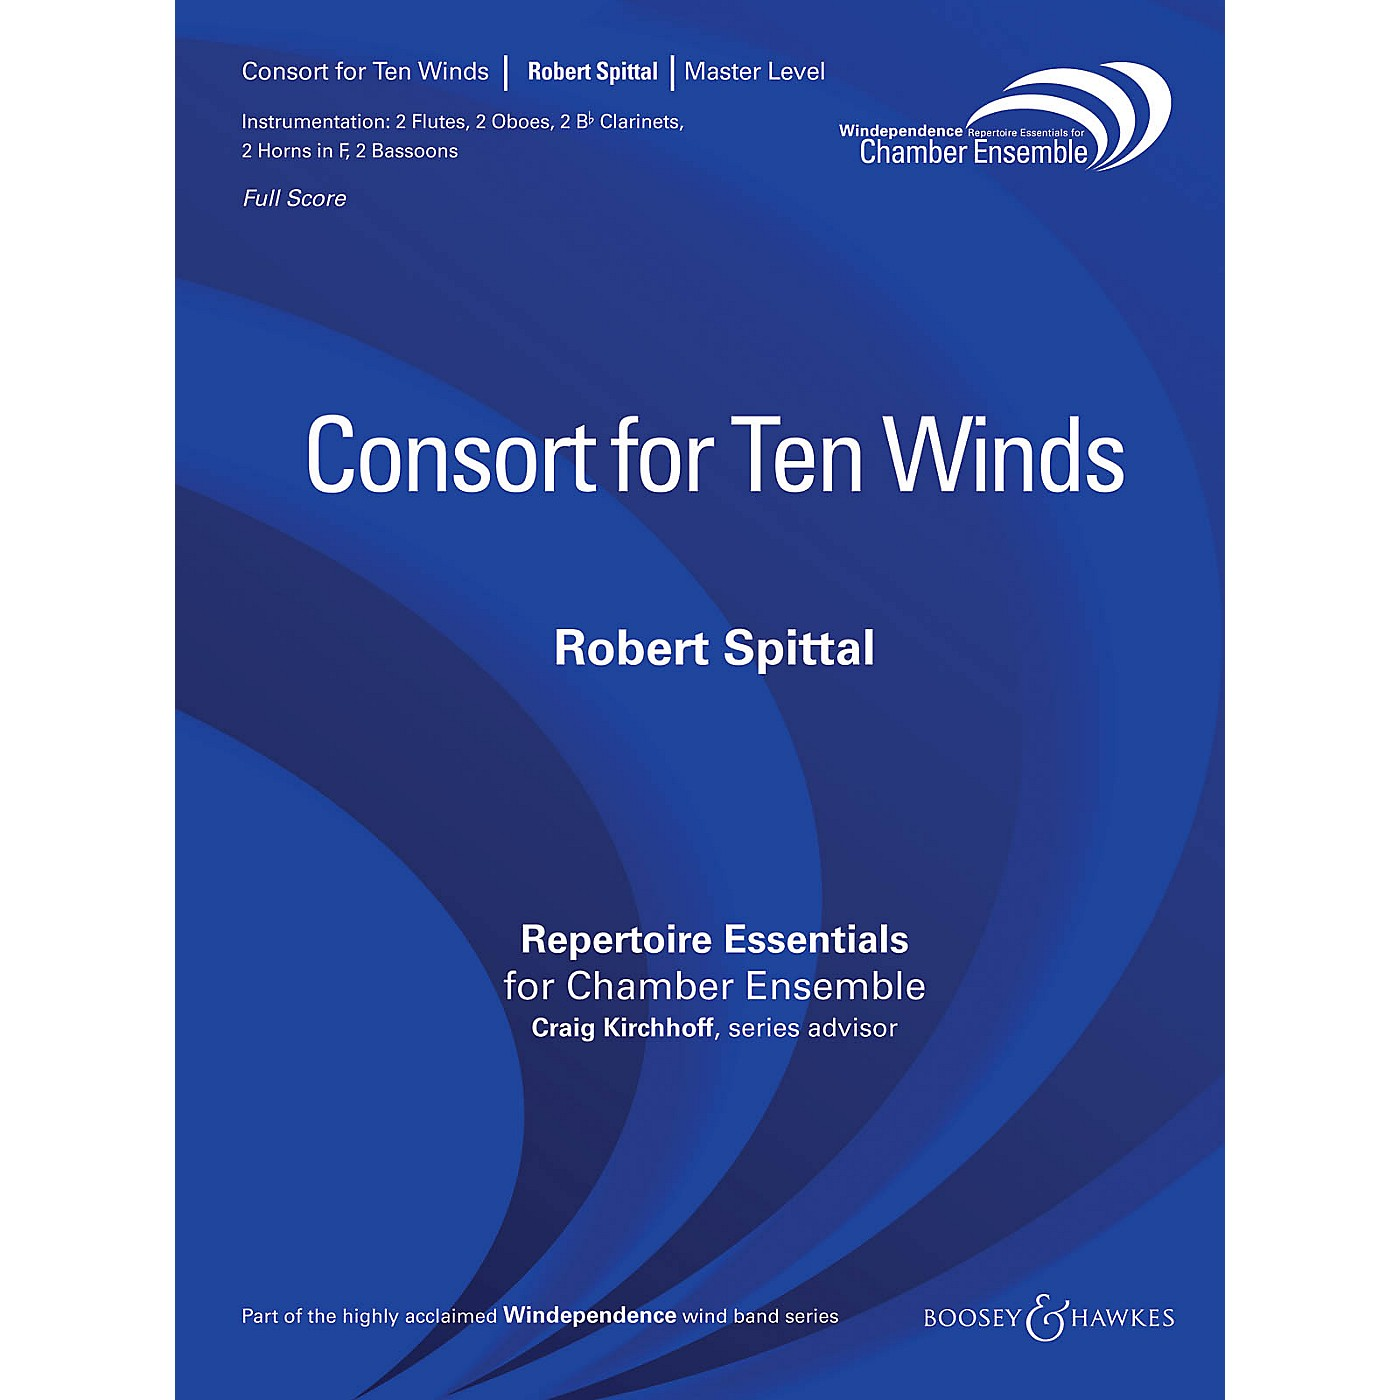 Boosey and Hawkes Consort for Ten Winds Windependence Chamber Ensemble Series by Robert Spittal thumbnail